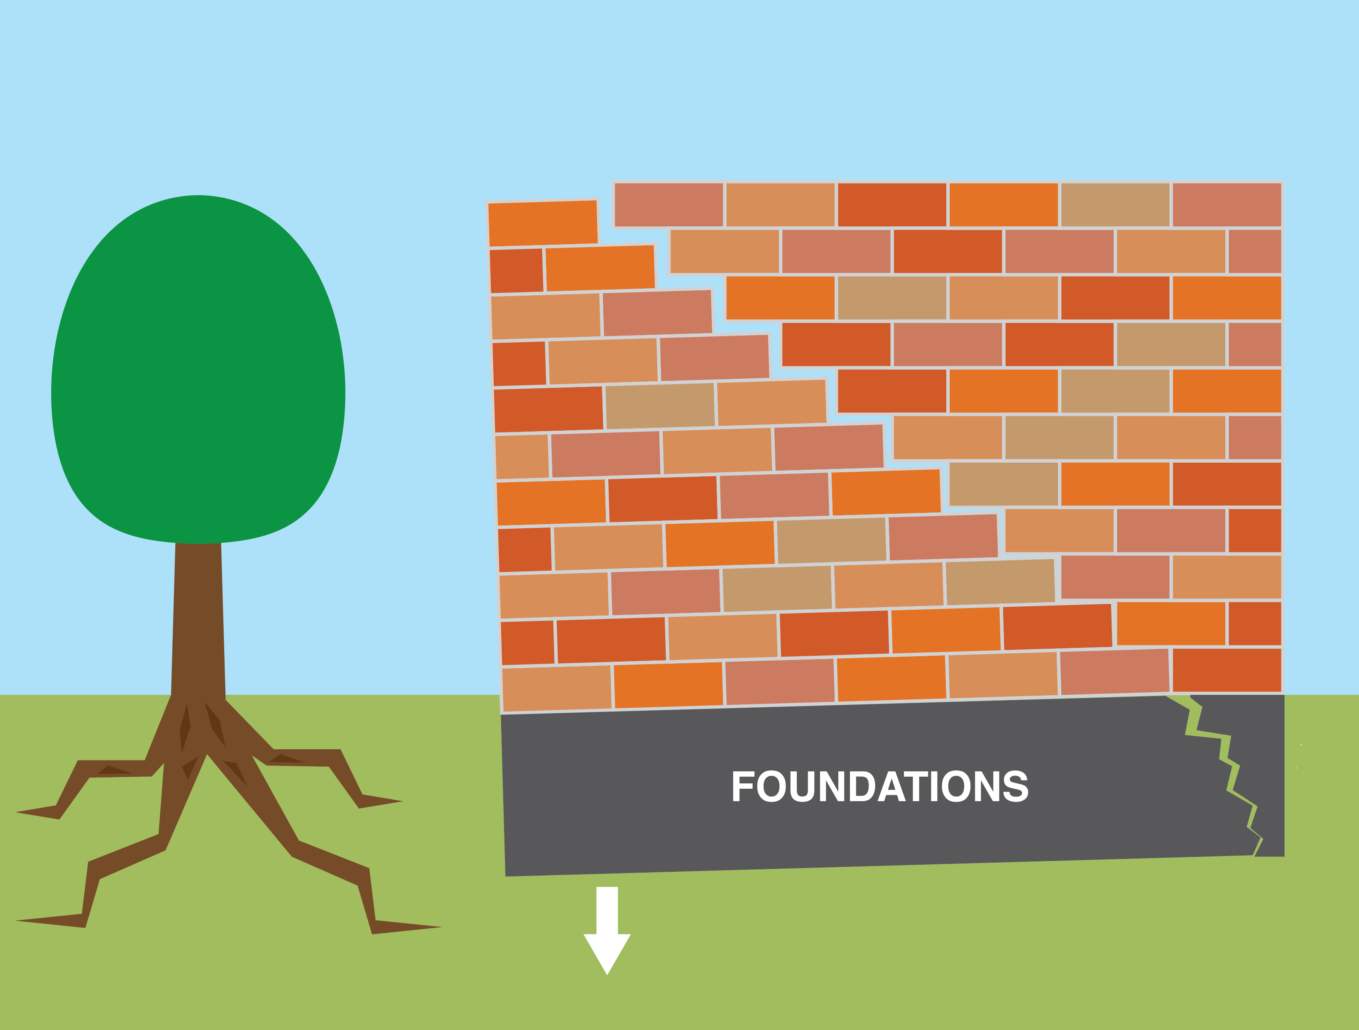 An illustration of a tree causing subsidence